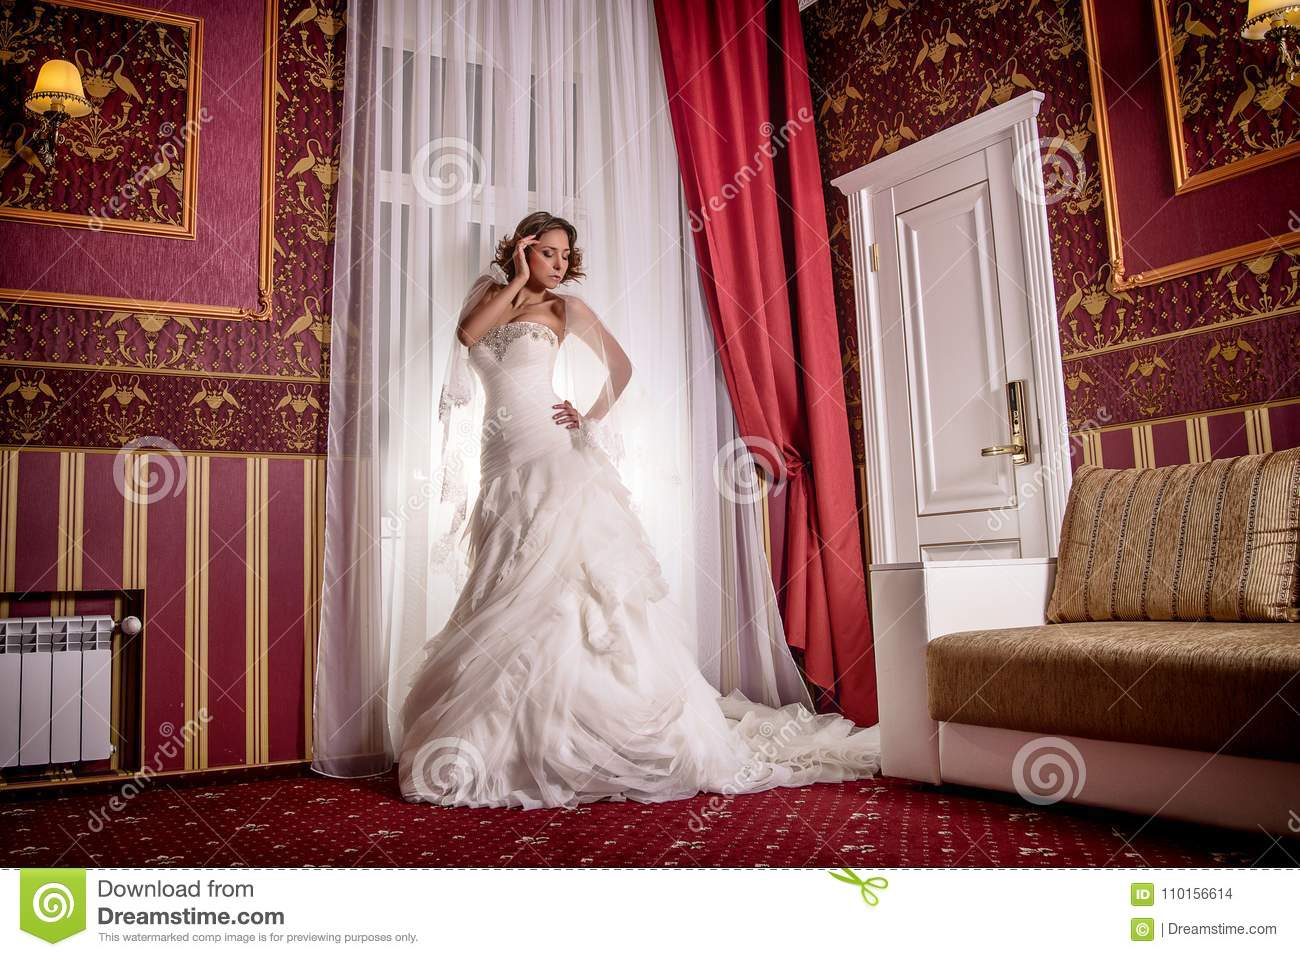 Beautiful model in wedding dress posing nicely in the motion in studio photo session.